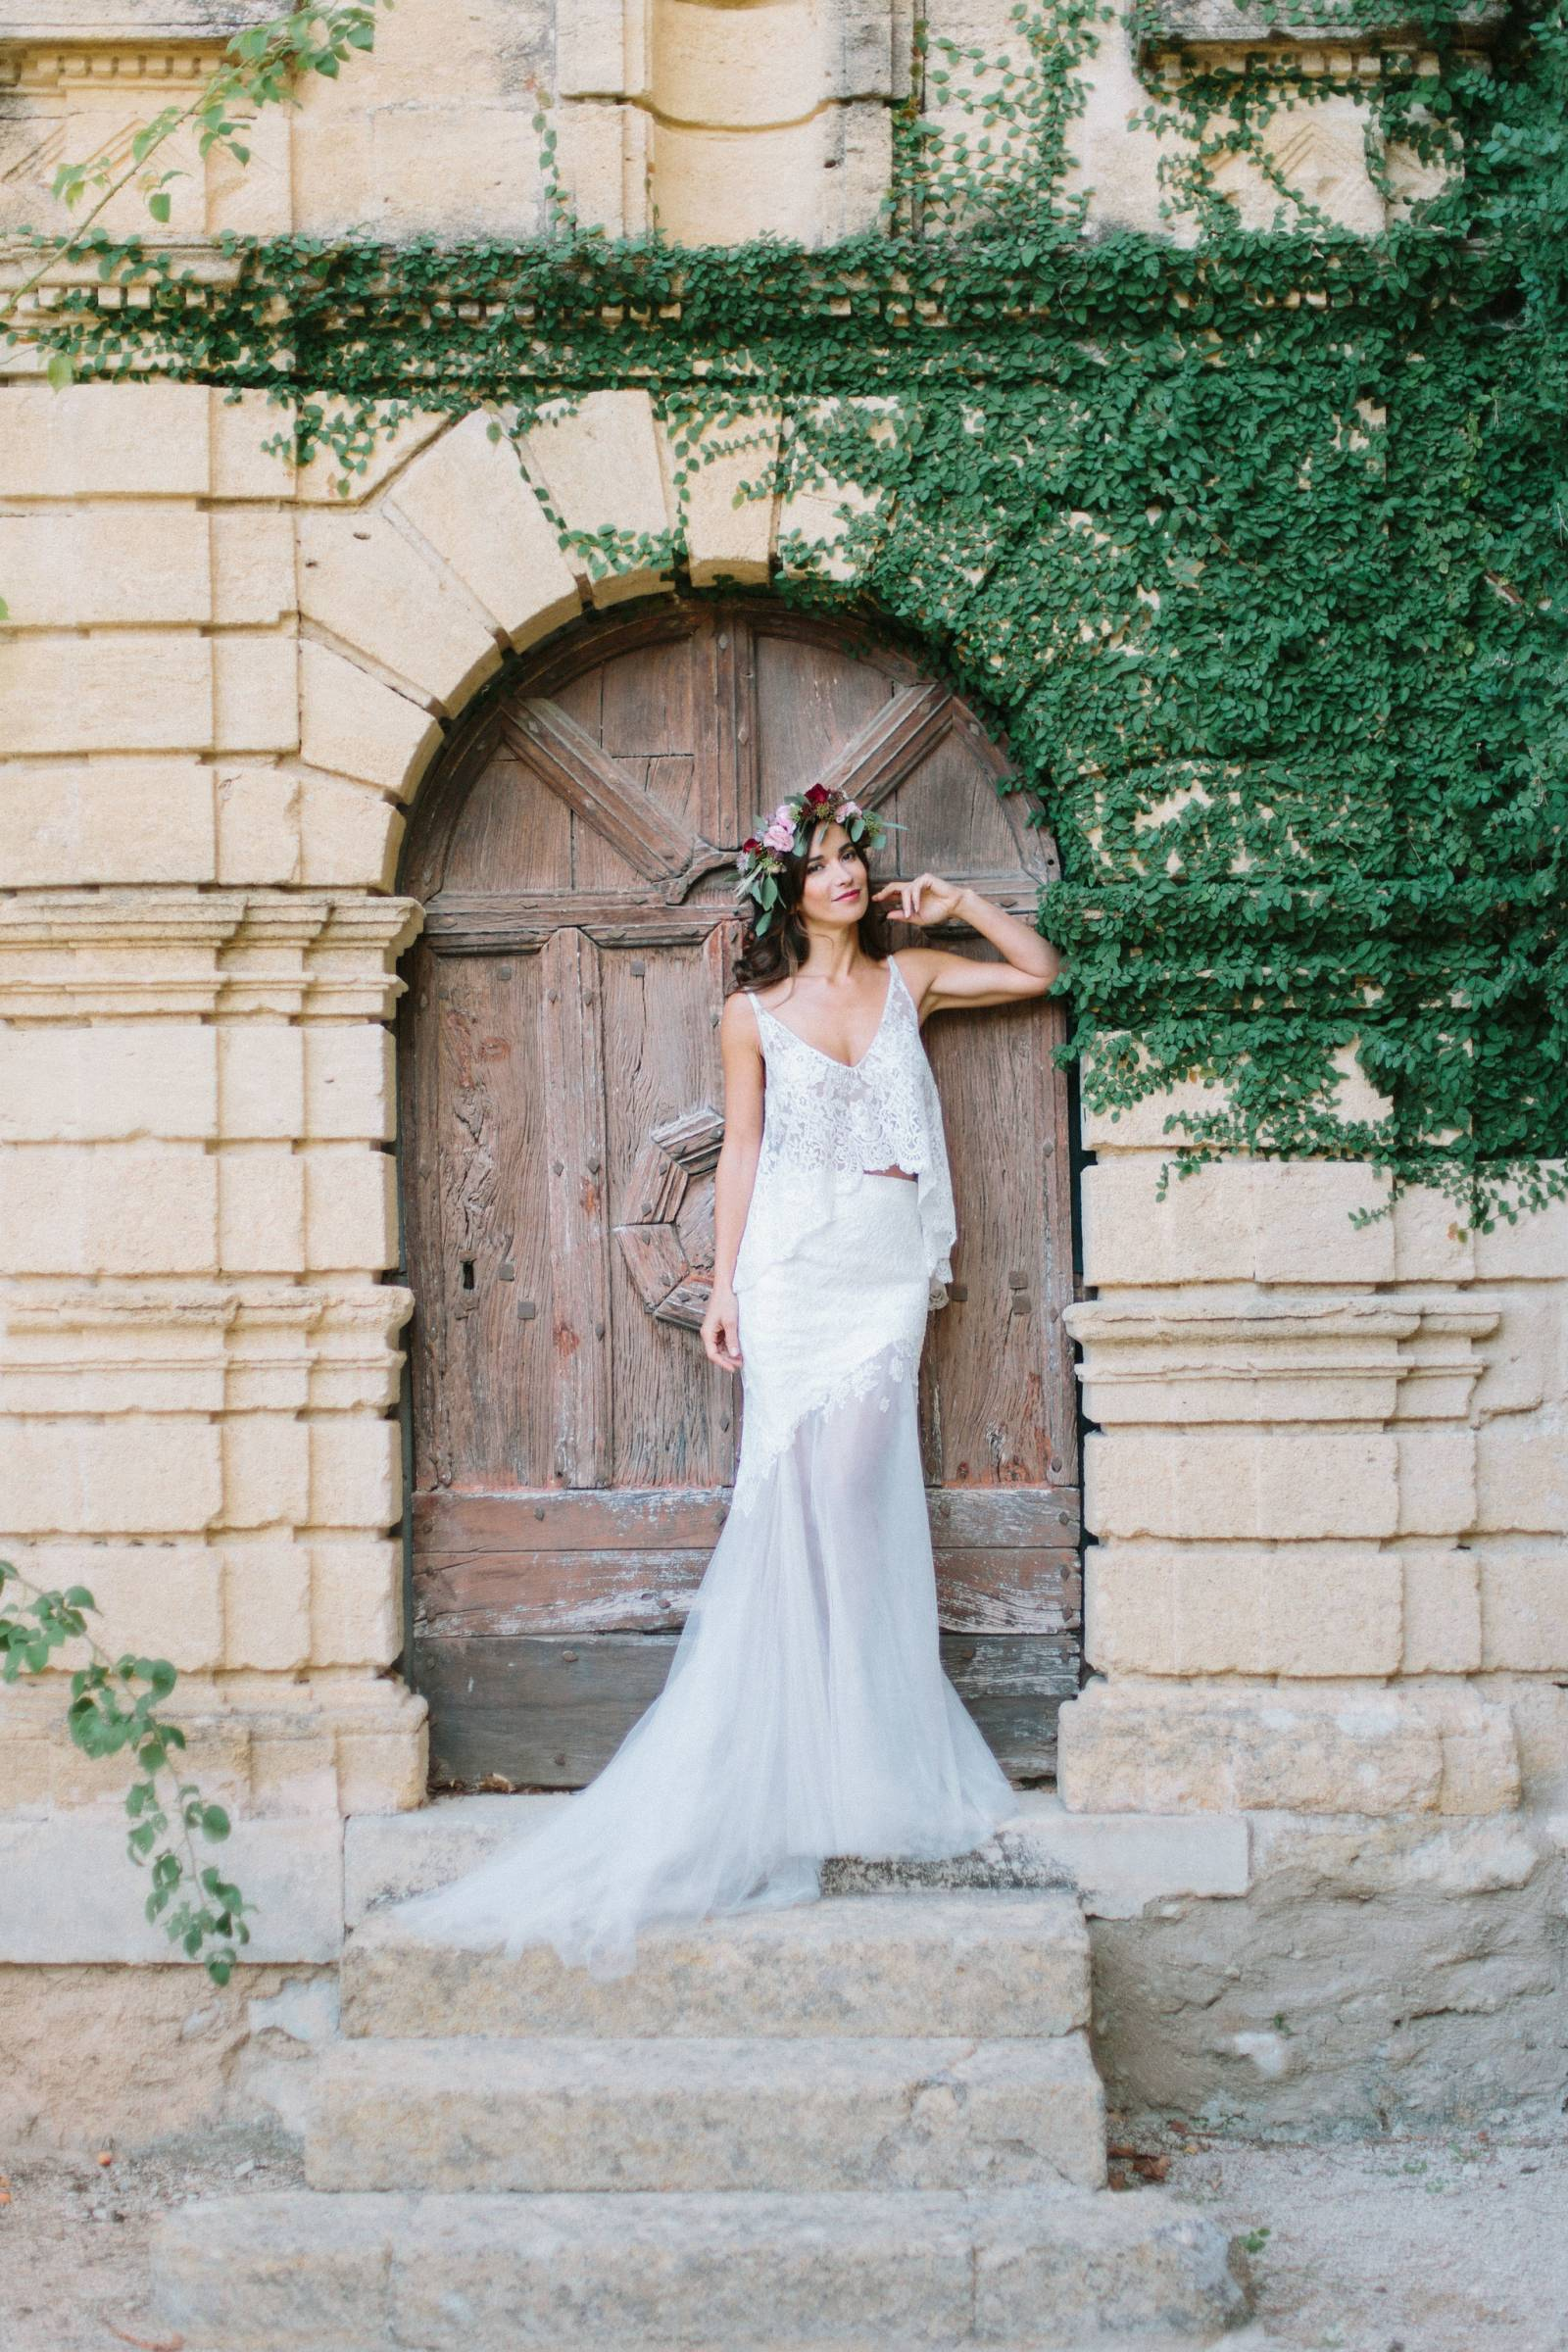 Elegance A La Francaise autumnal chateau inspiration in provence | provence wedding